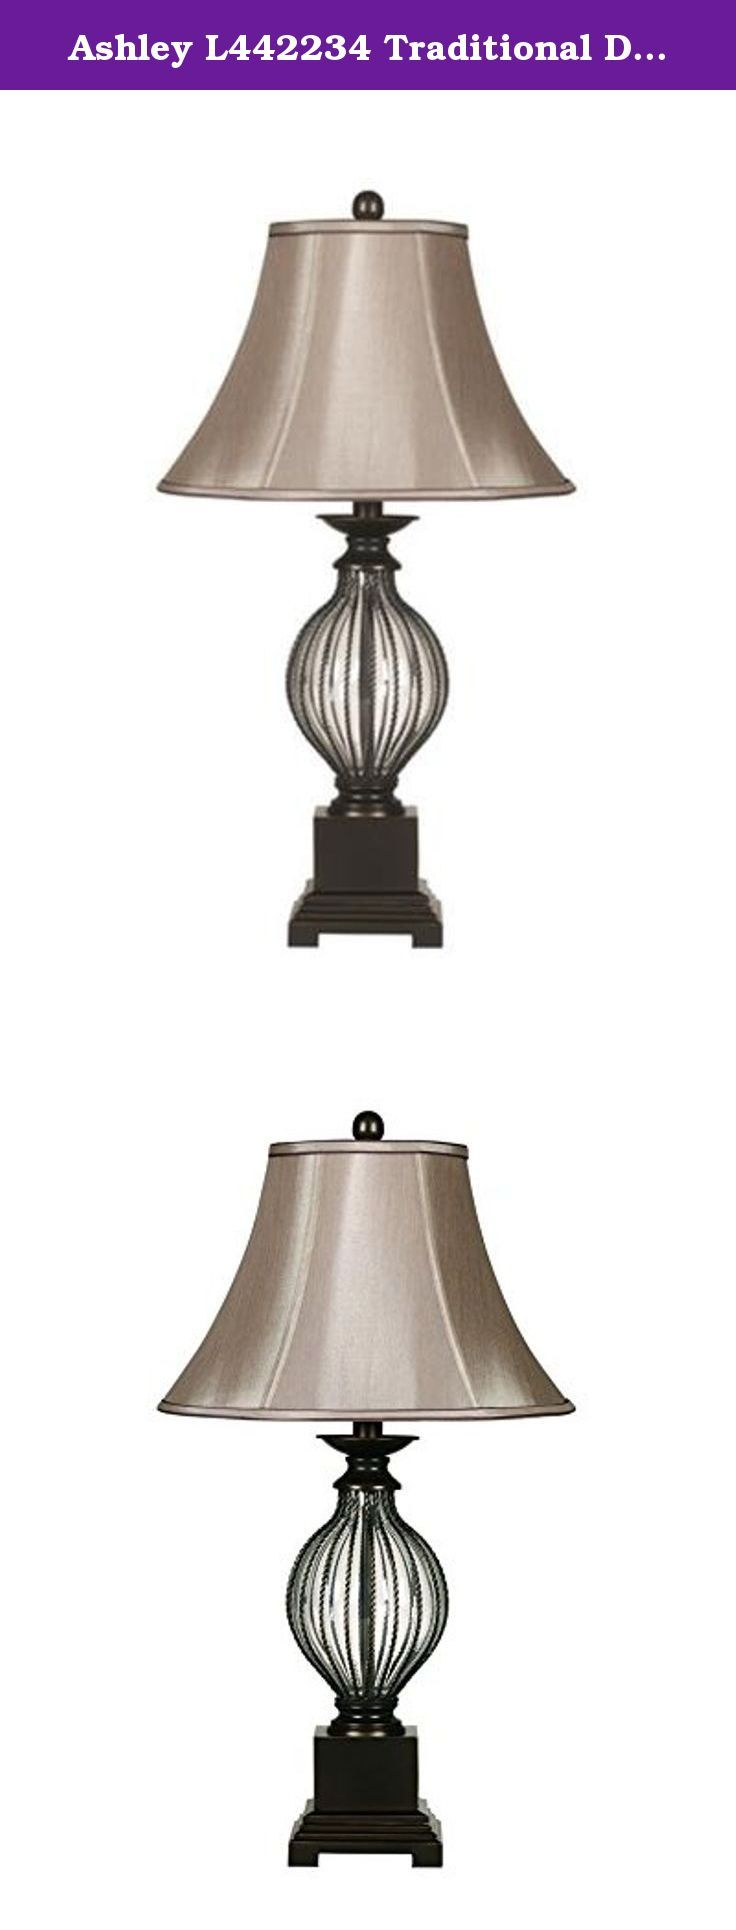 Table lamp harp sizes - 17 Best Images About Table Lamps Lamps Shades Lighting Ceiling Fans Tools Home Improvement On Pinterest Chrome Finish Drum Shade And Led Desk